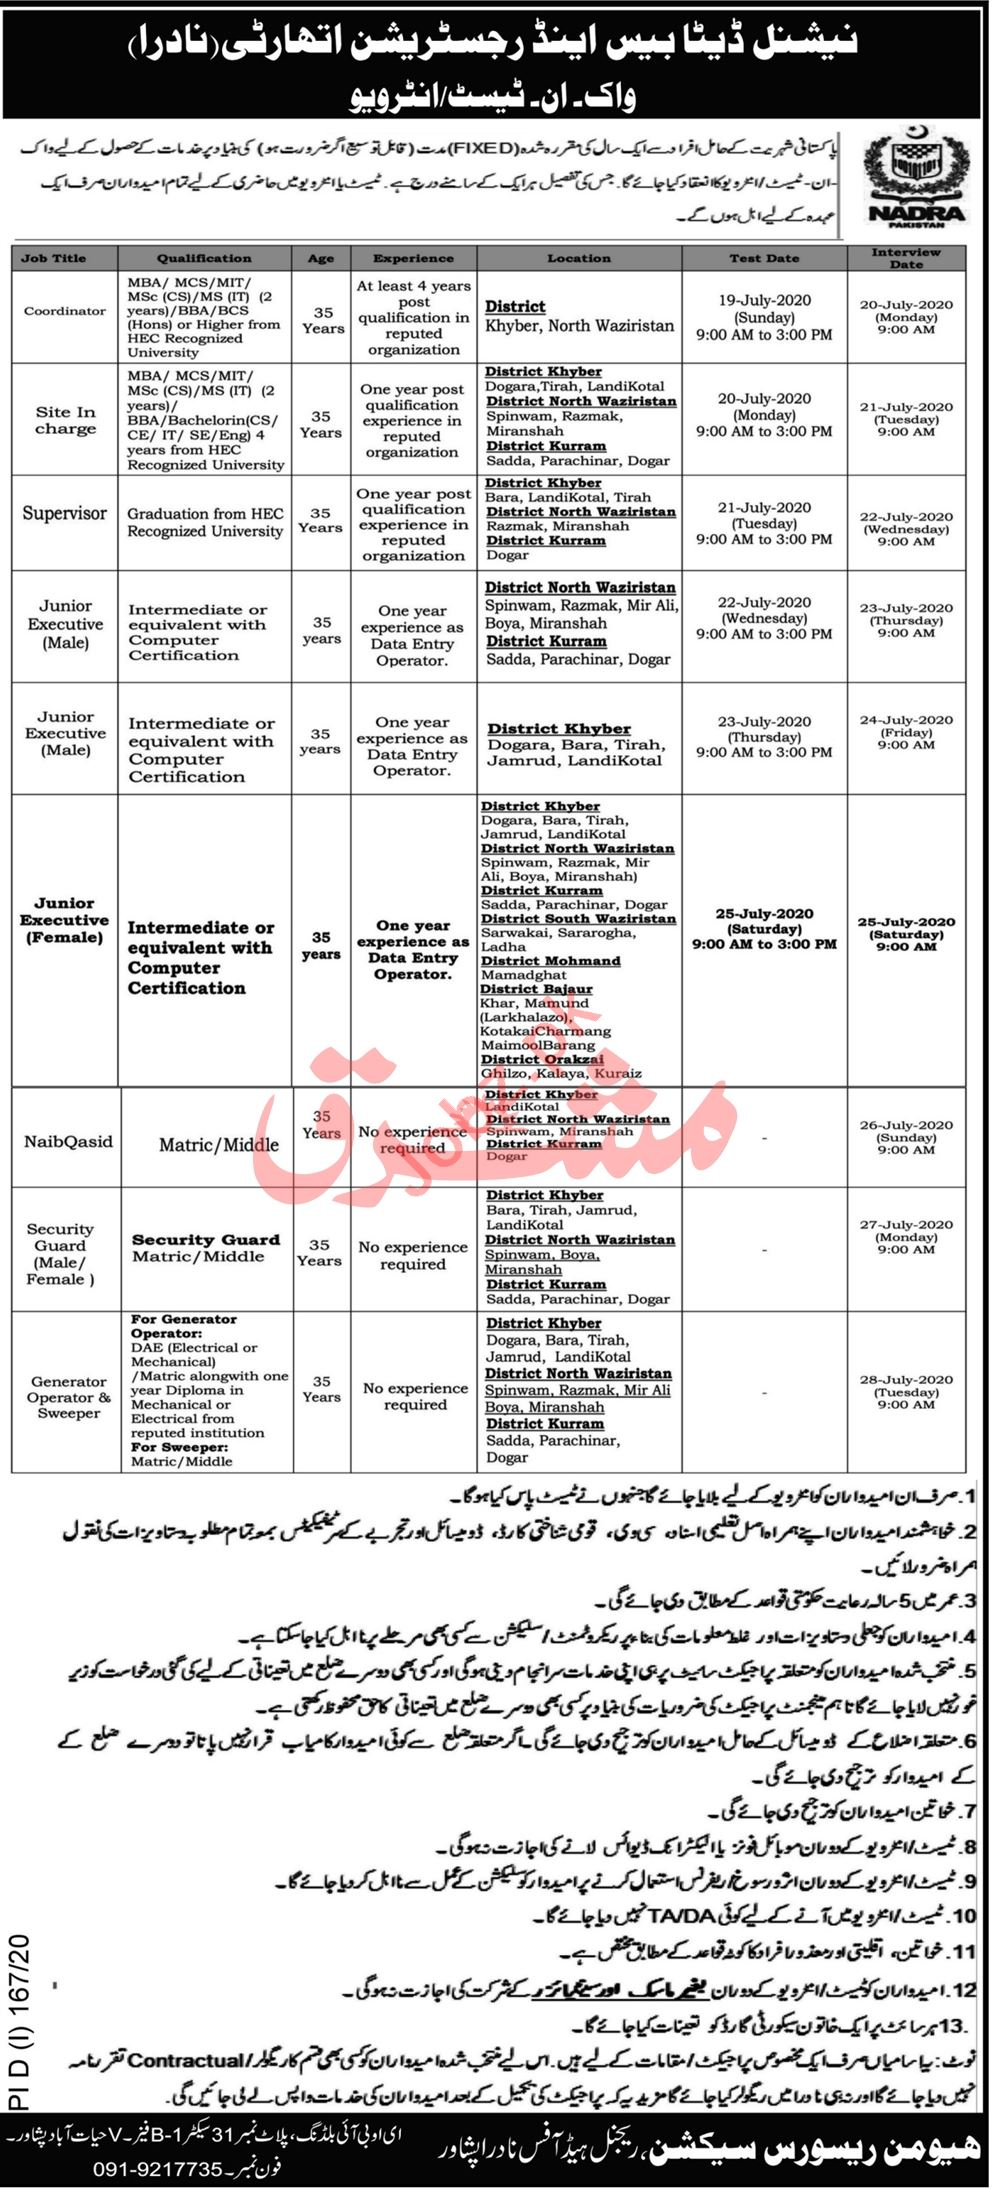 NADRA Regional Head Office Peshawar Jobs 2020